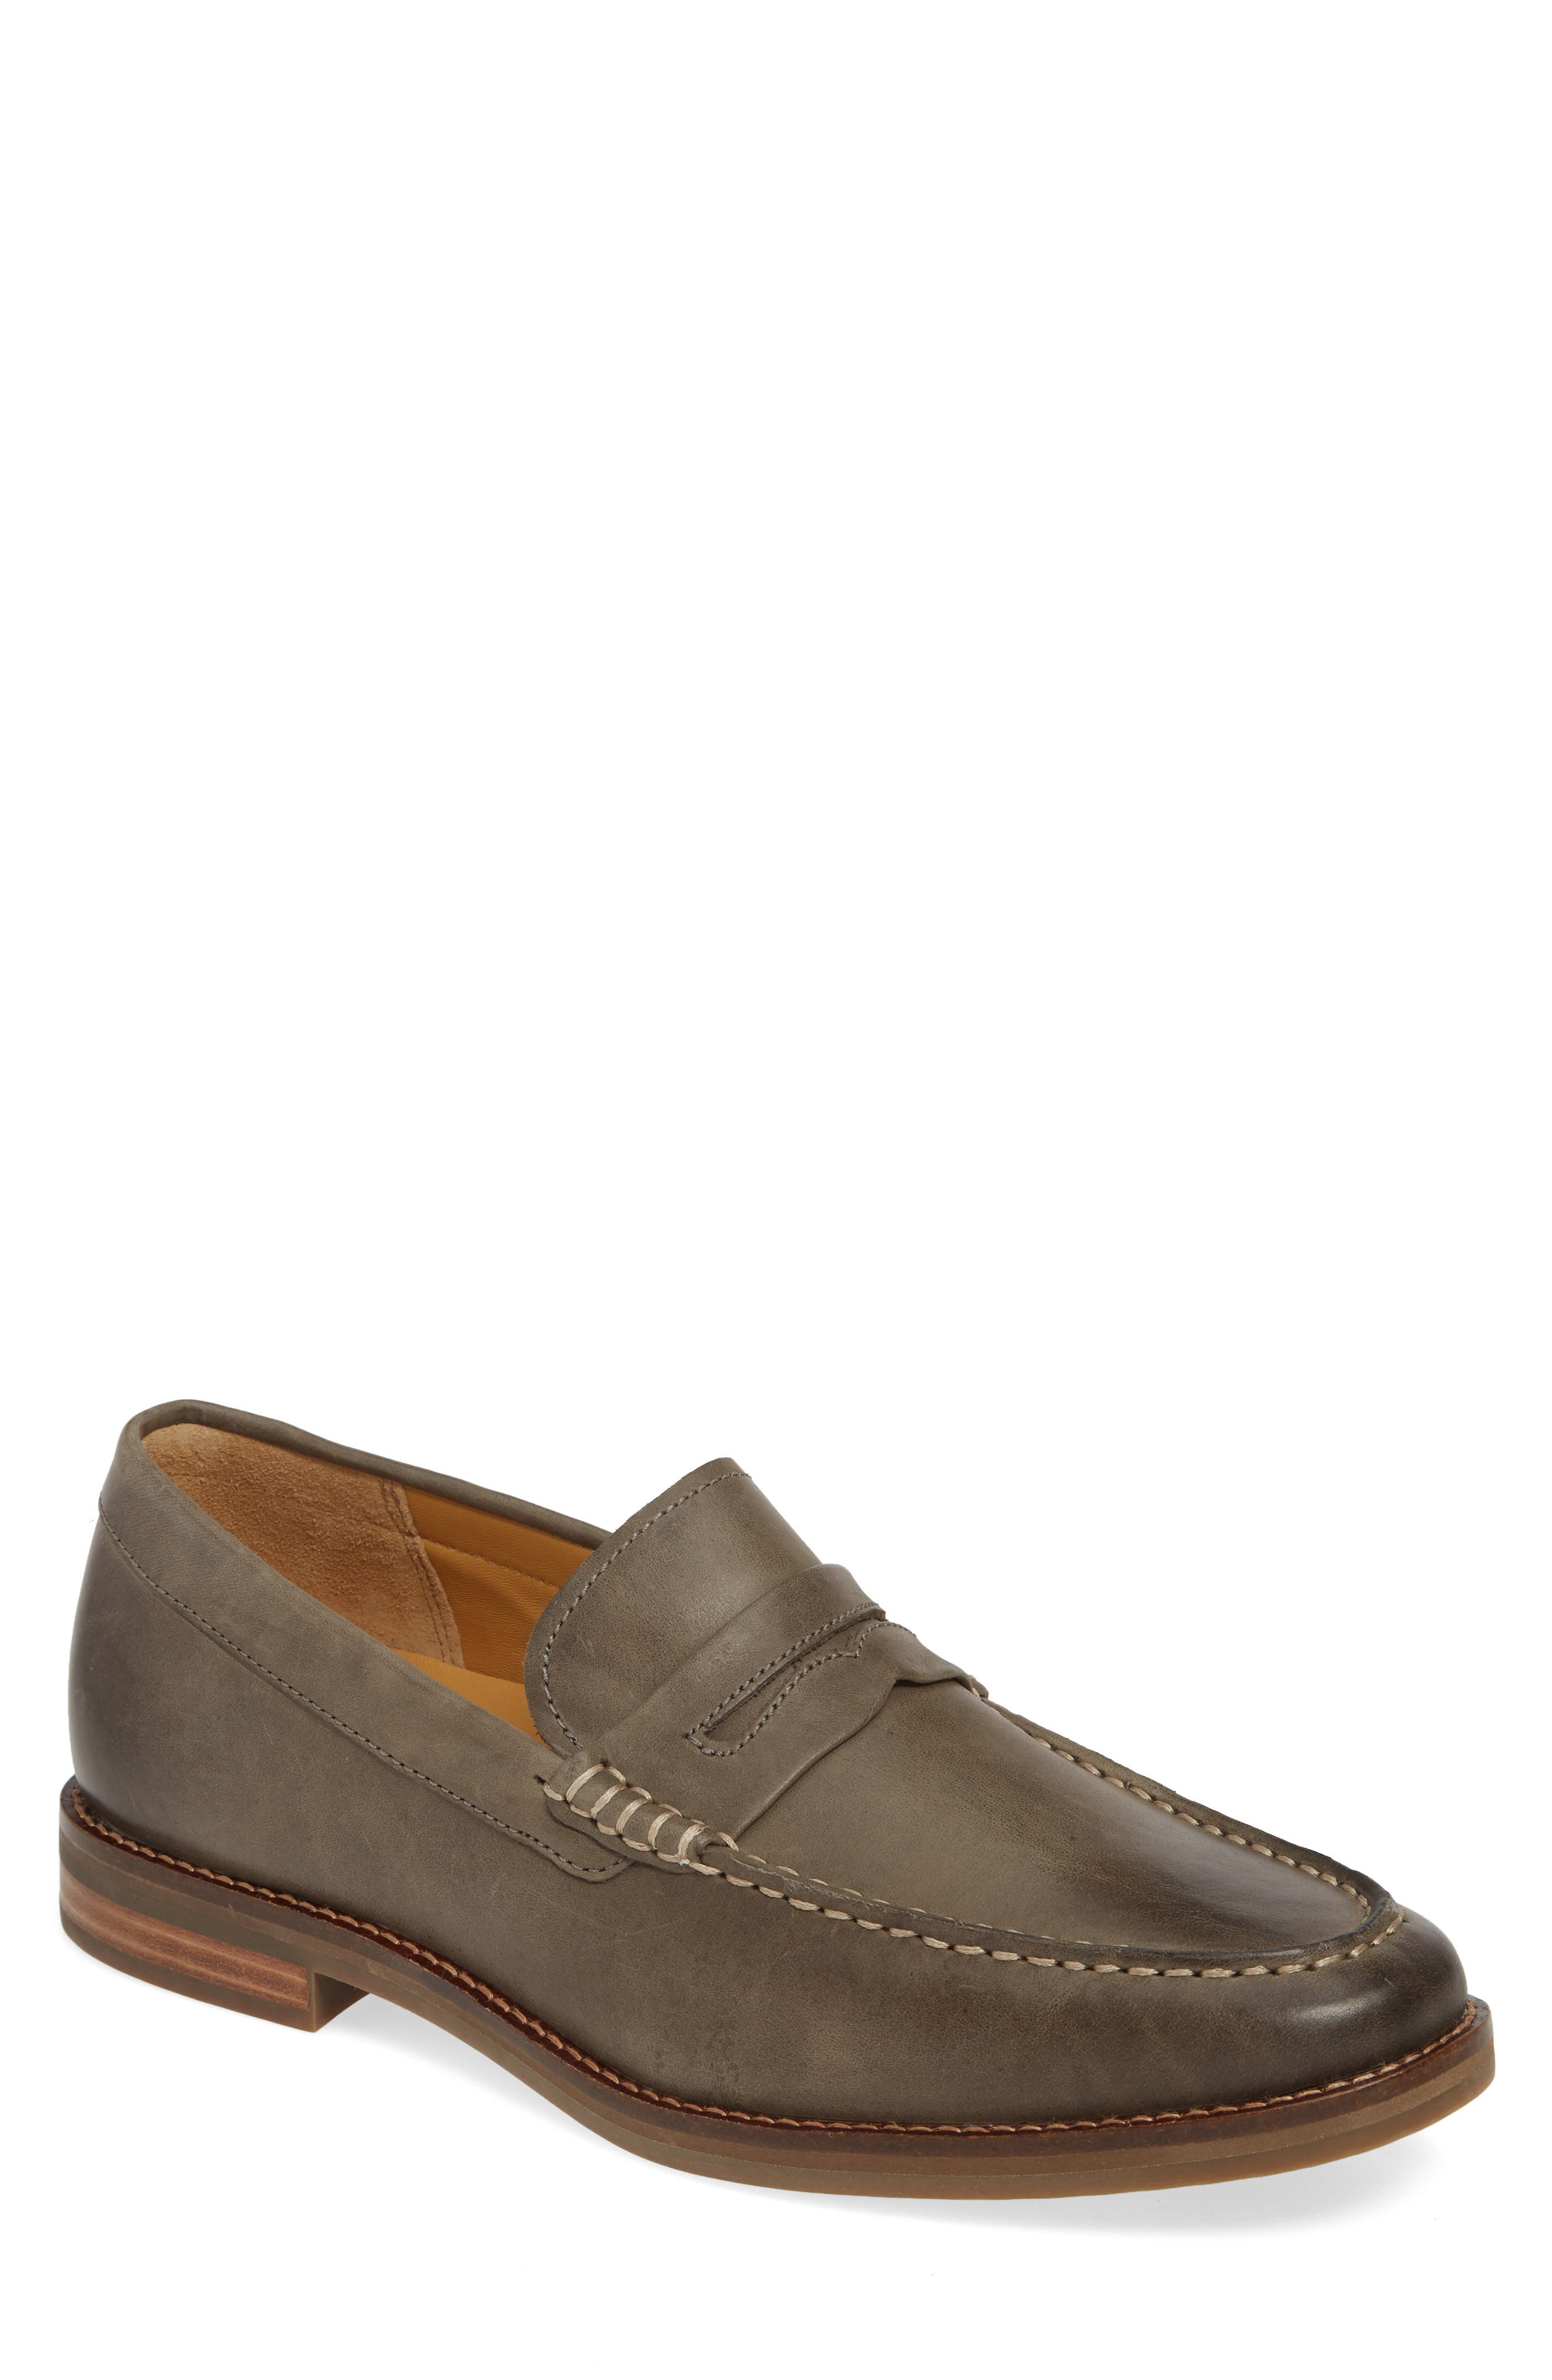 SPERRY, Exeter Penny Loafer, Main thumbnail 1, color, GREY